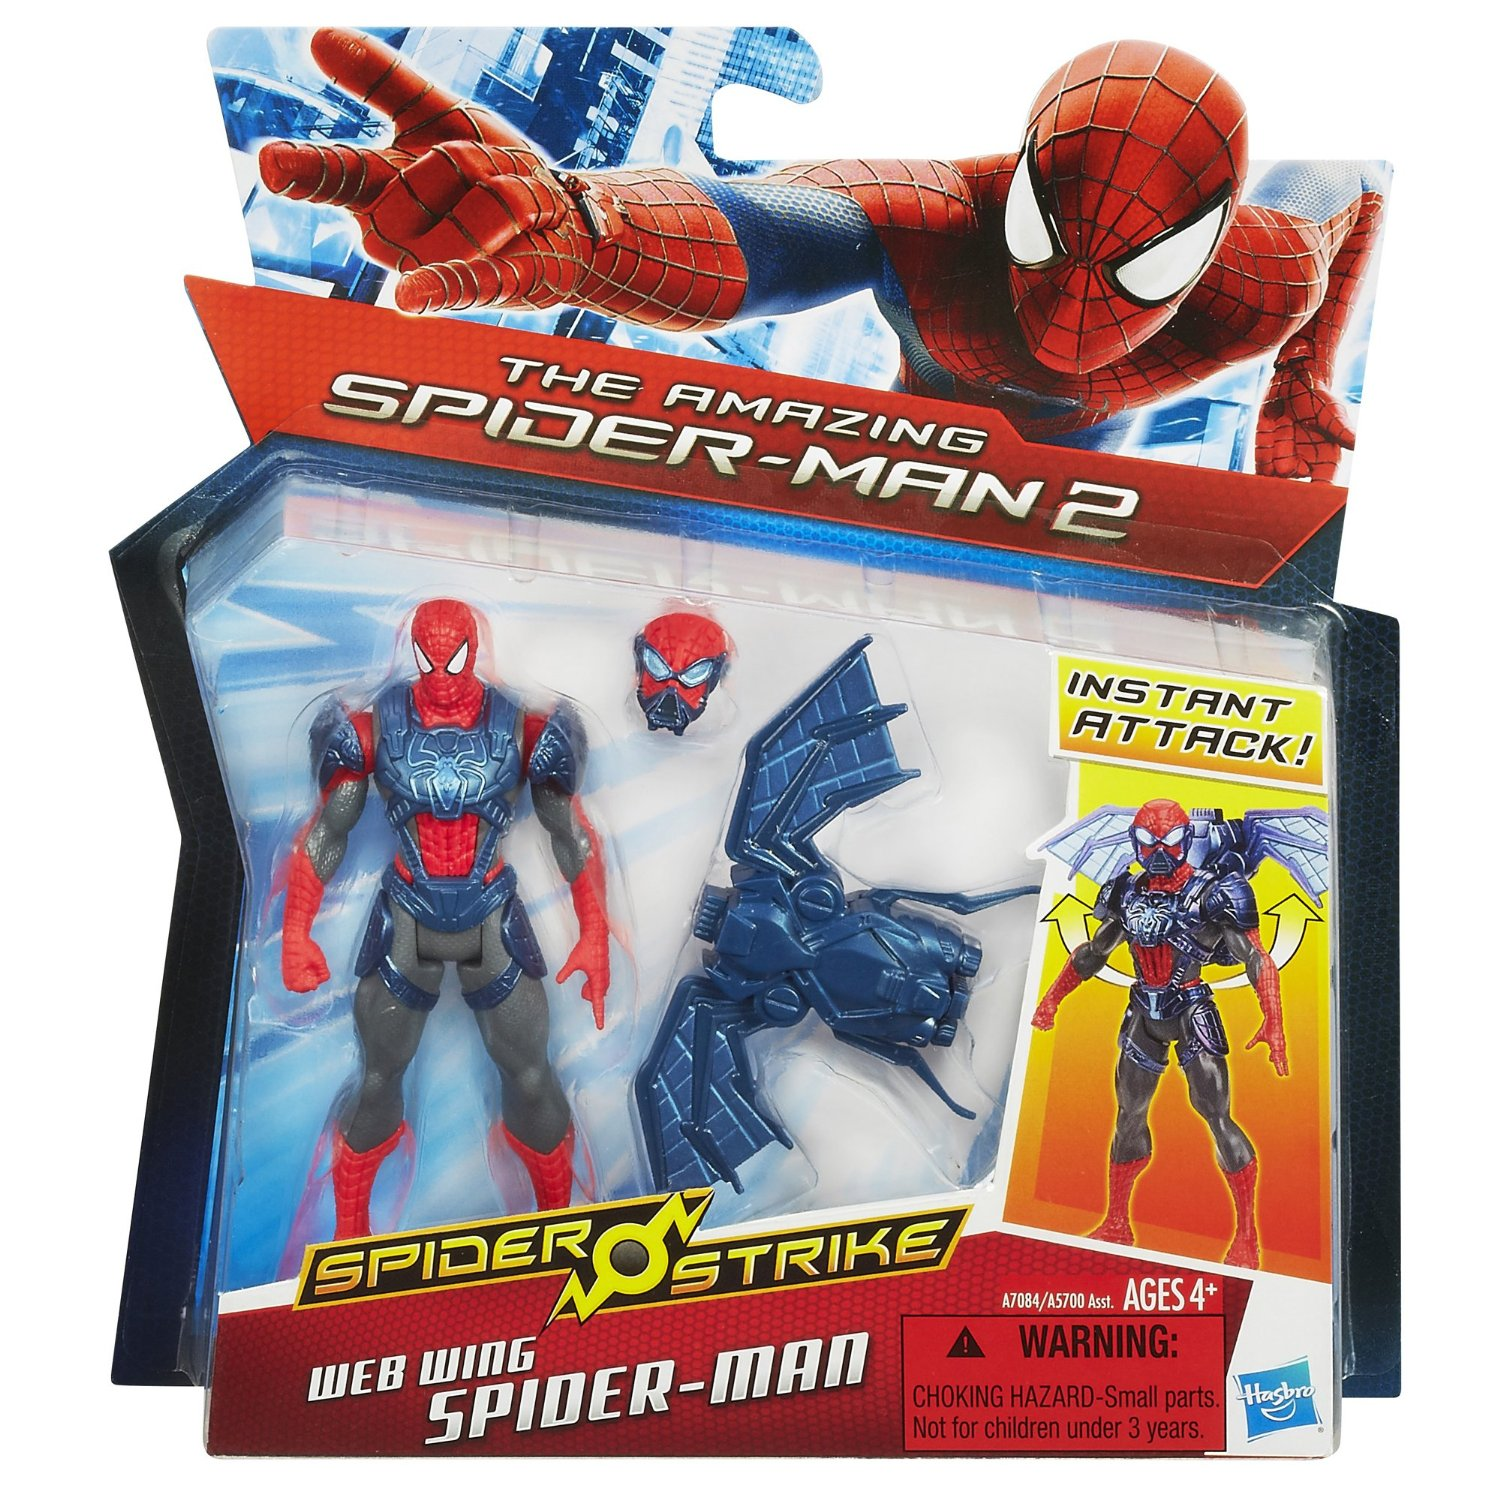 Spider Strike Web Wing Spiderman Figure